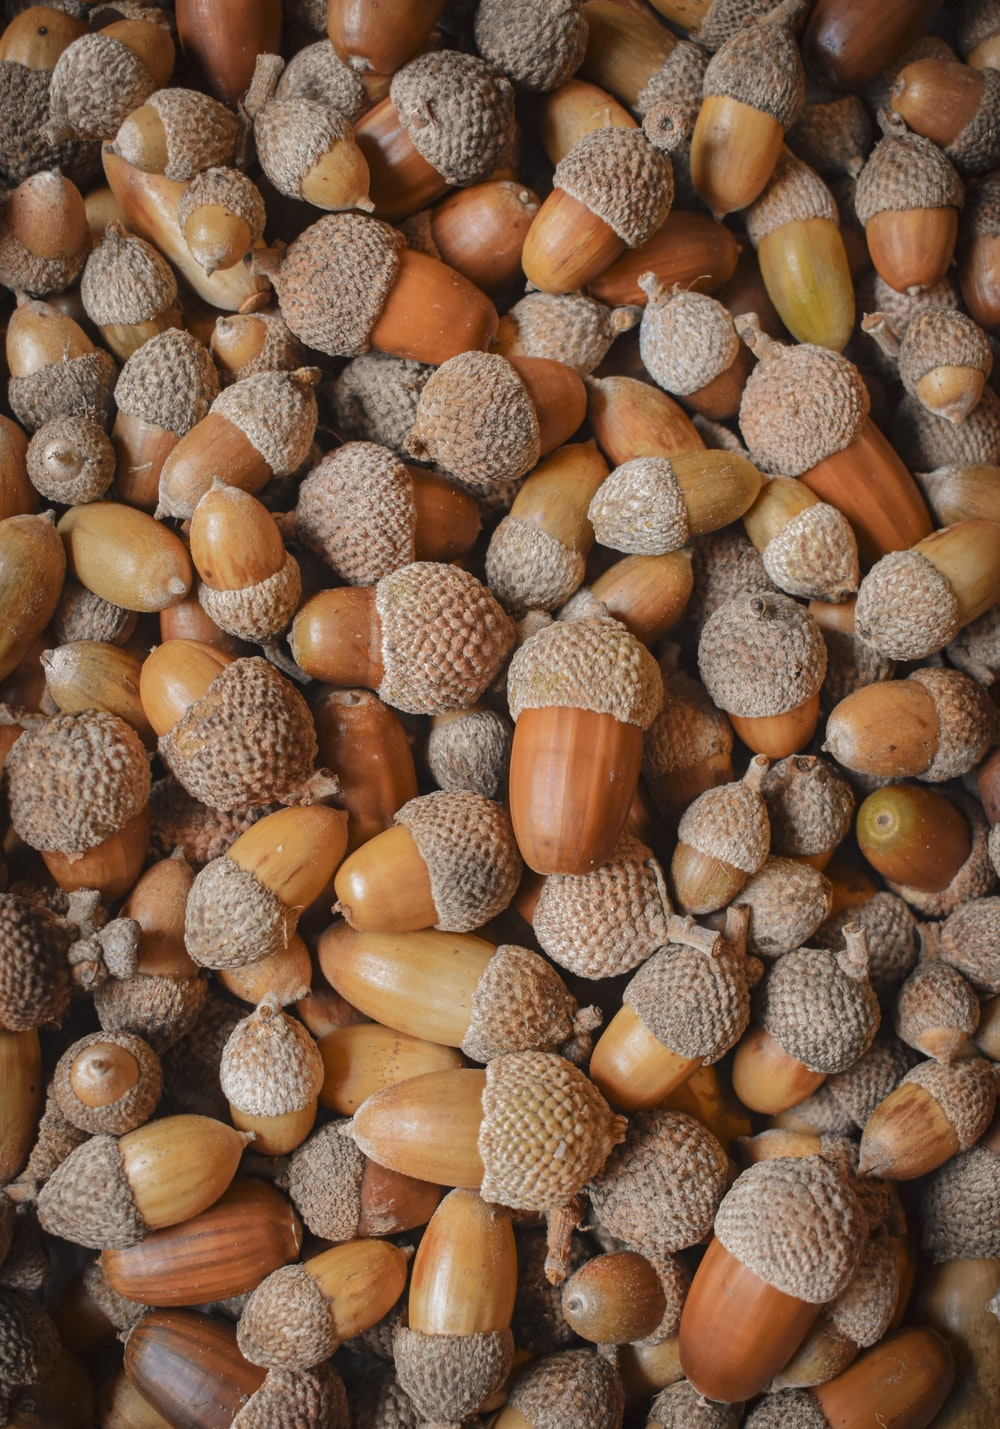 brown and beige nut lot